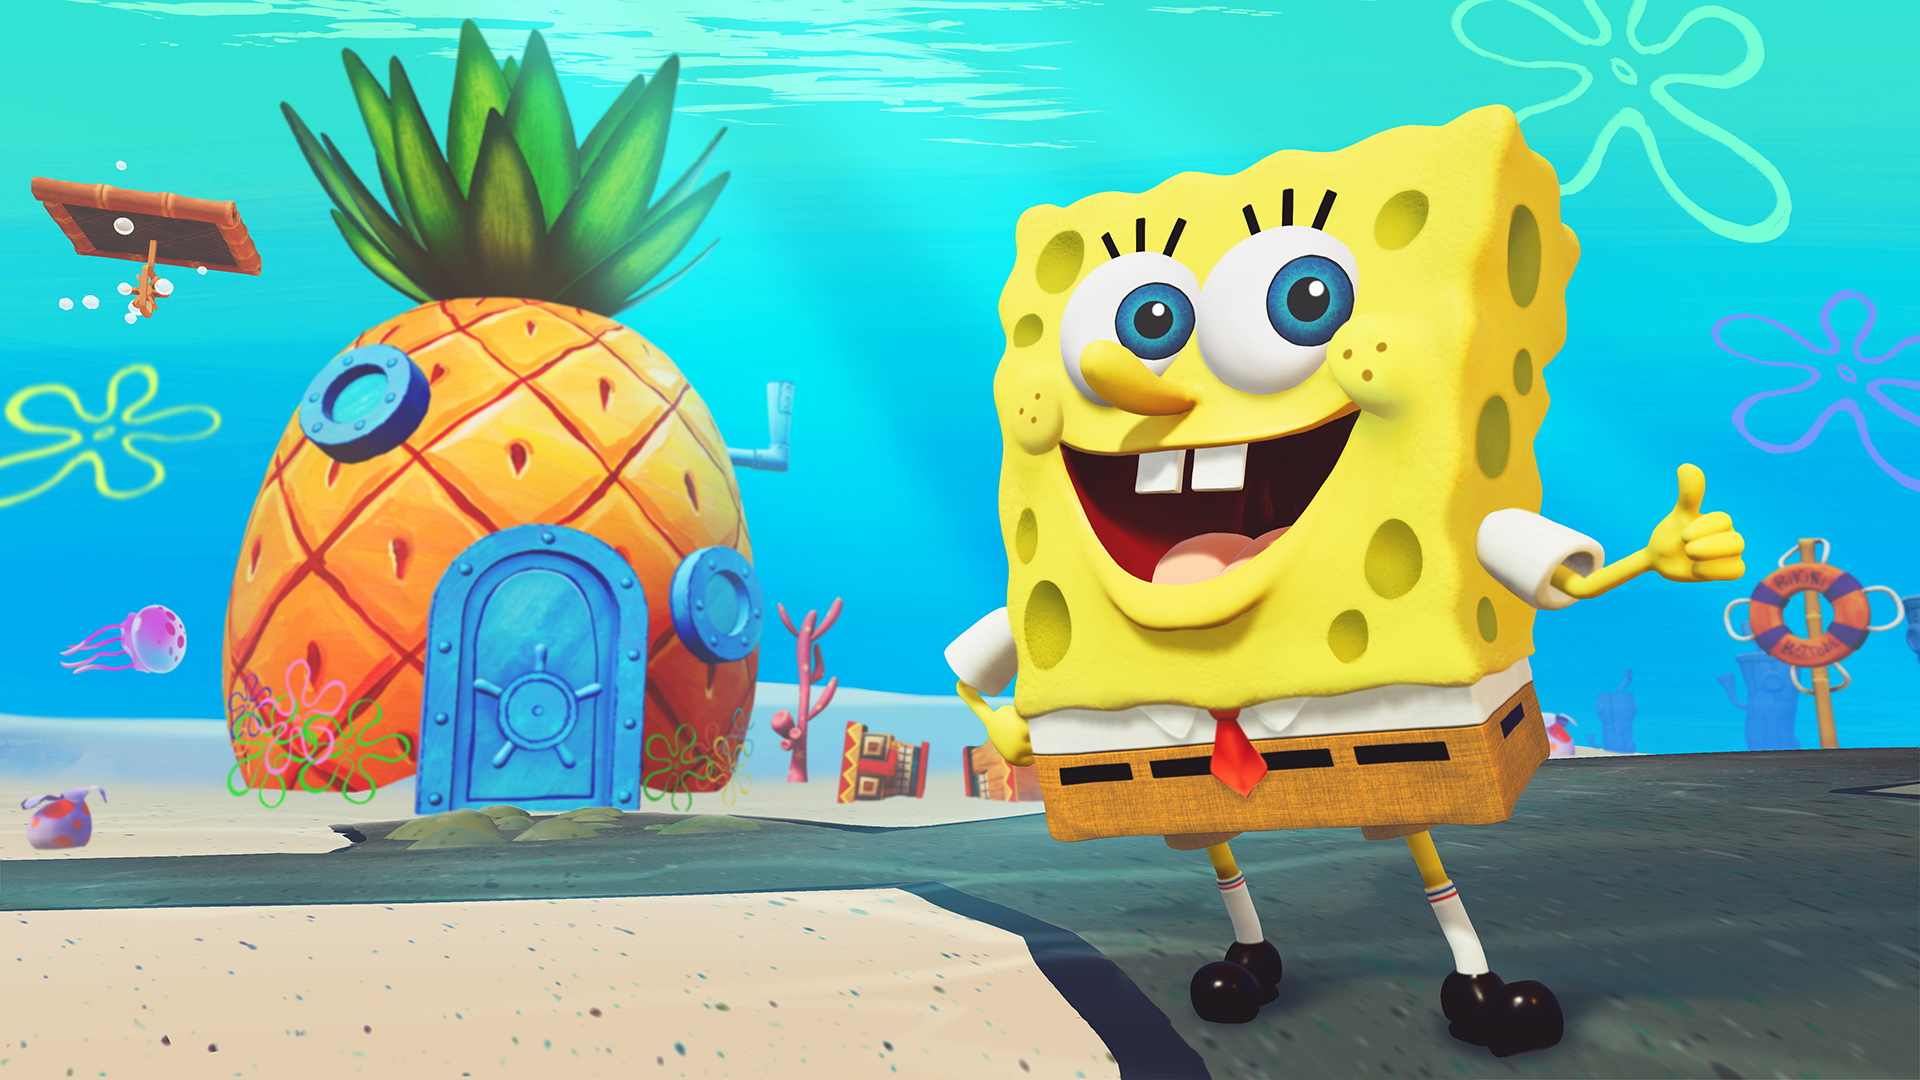 bikini battle for Spongebob sqaurepants